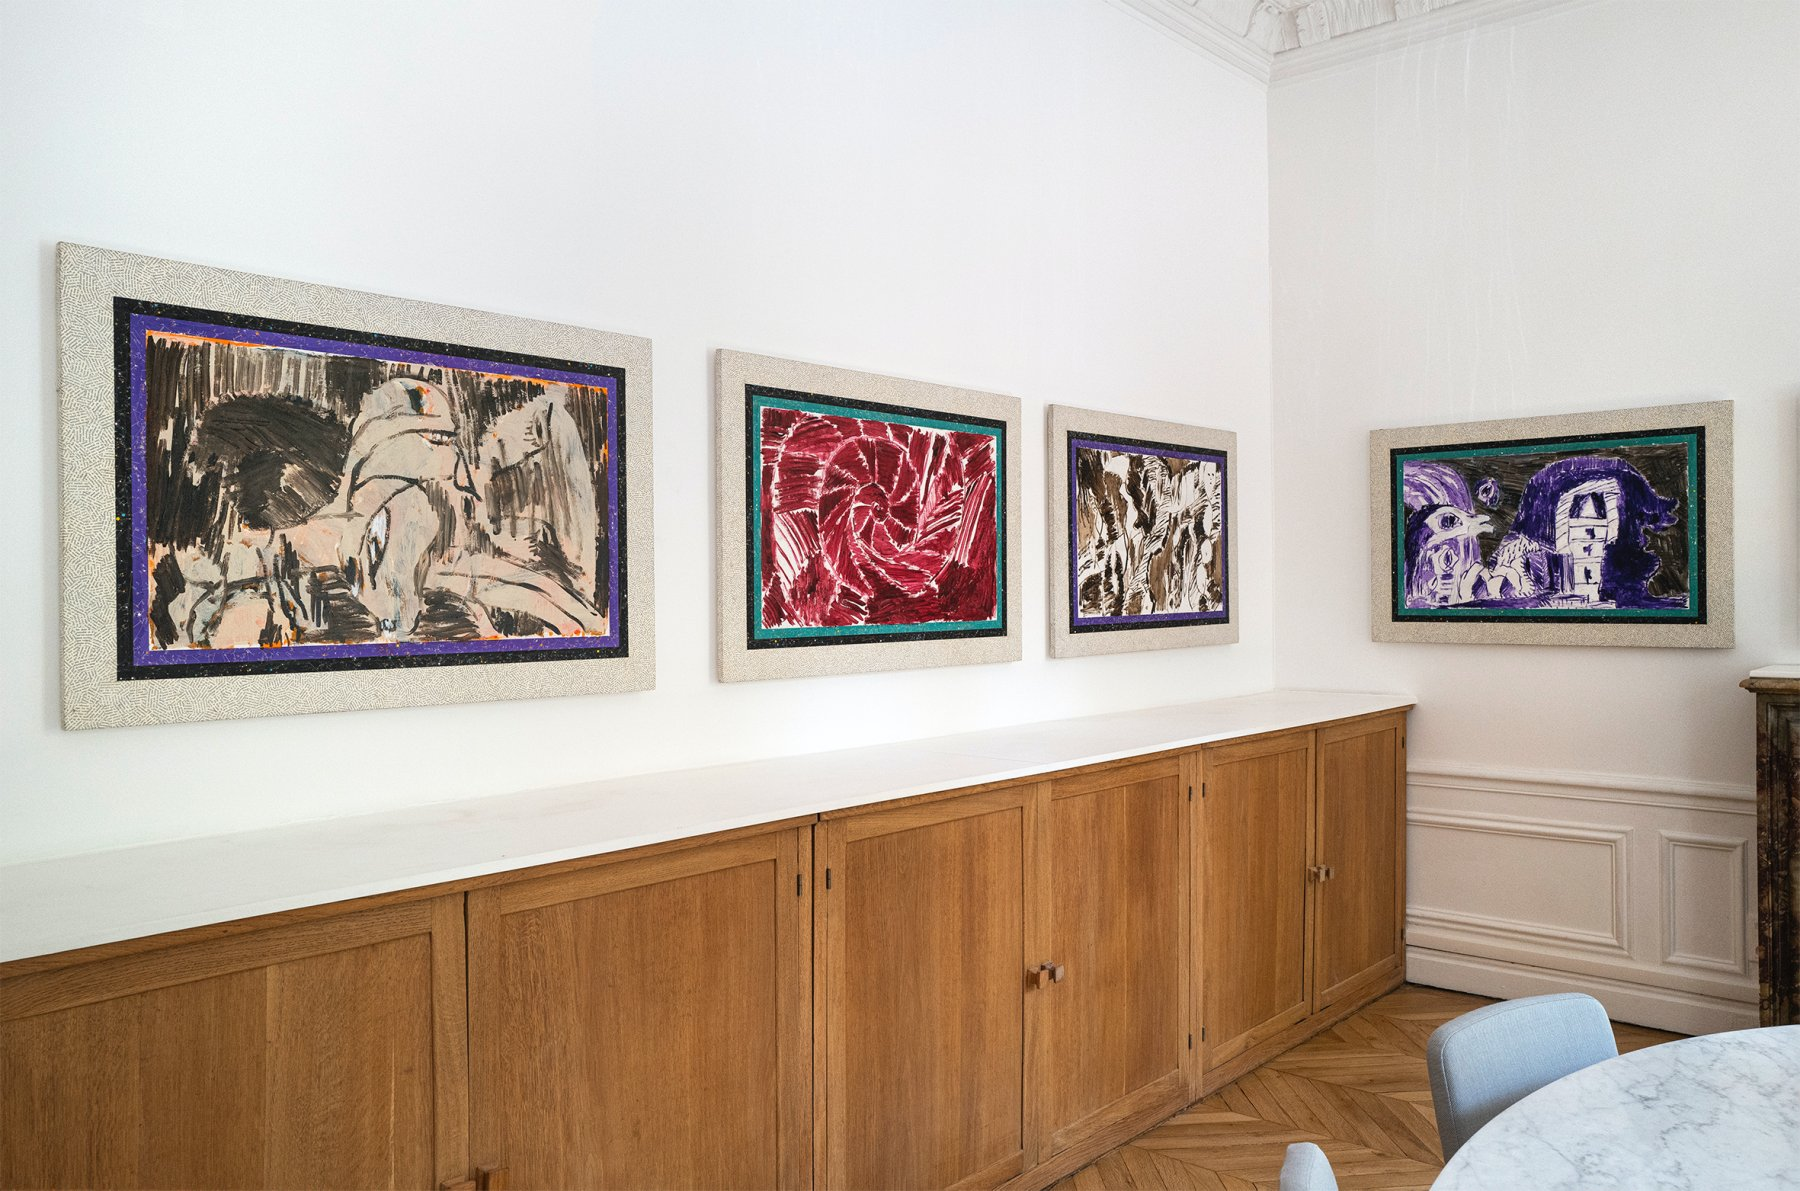 Galerie Lelong Co Alechinsky with 1